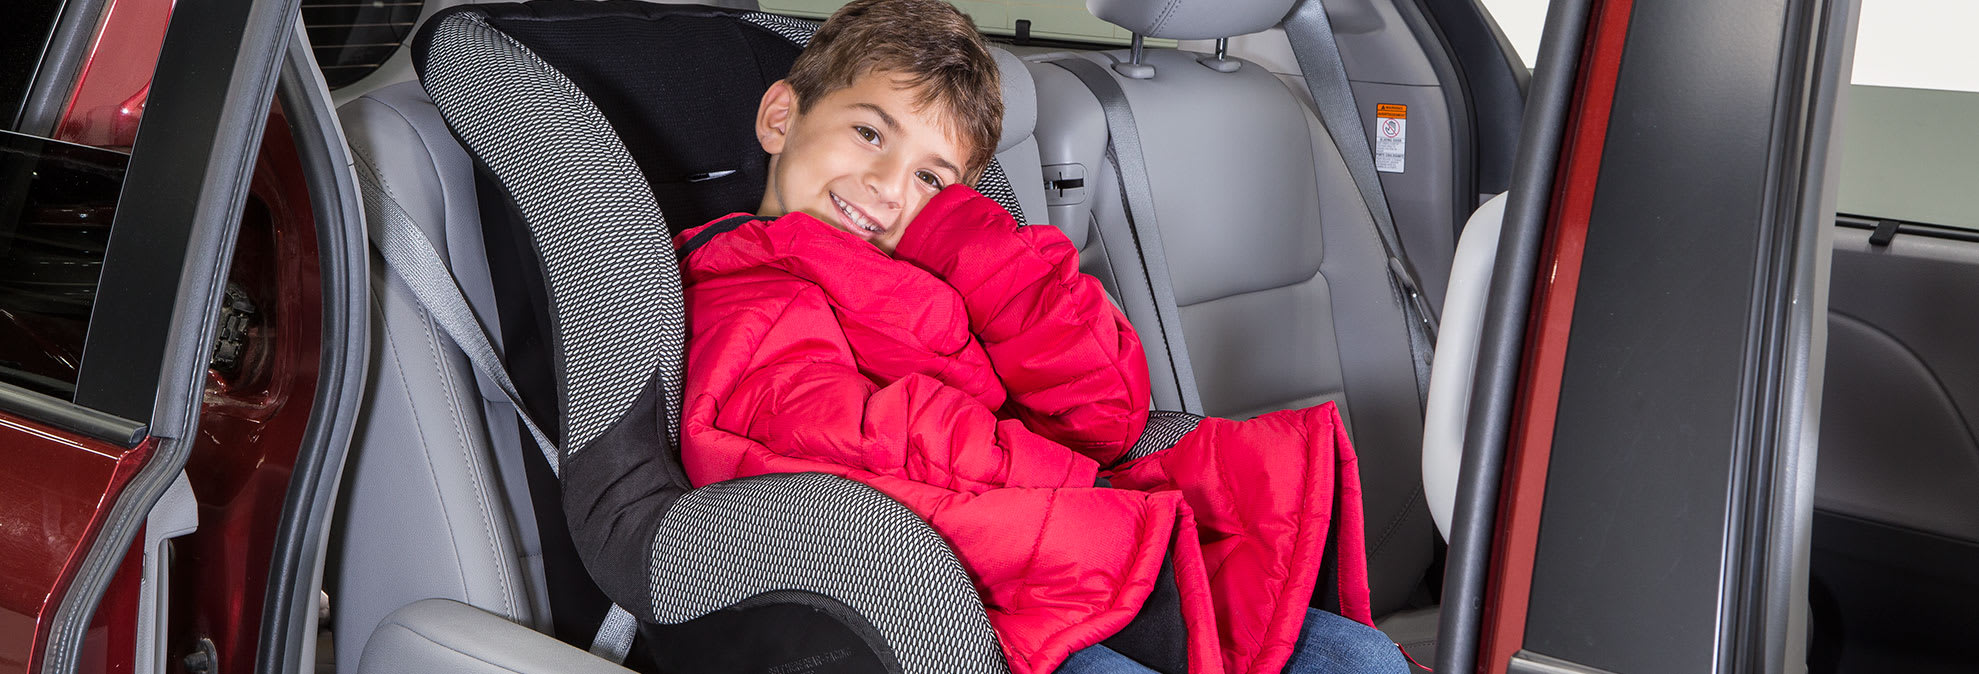 9df5060ea The Dangers of Winter Coats and Car Seats - Consumer Reports